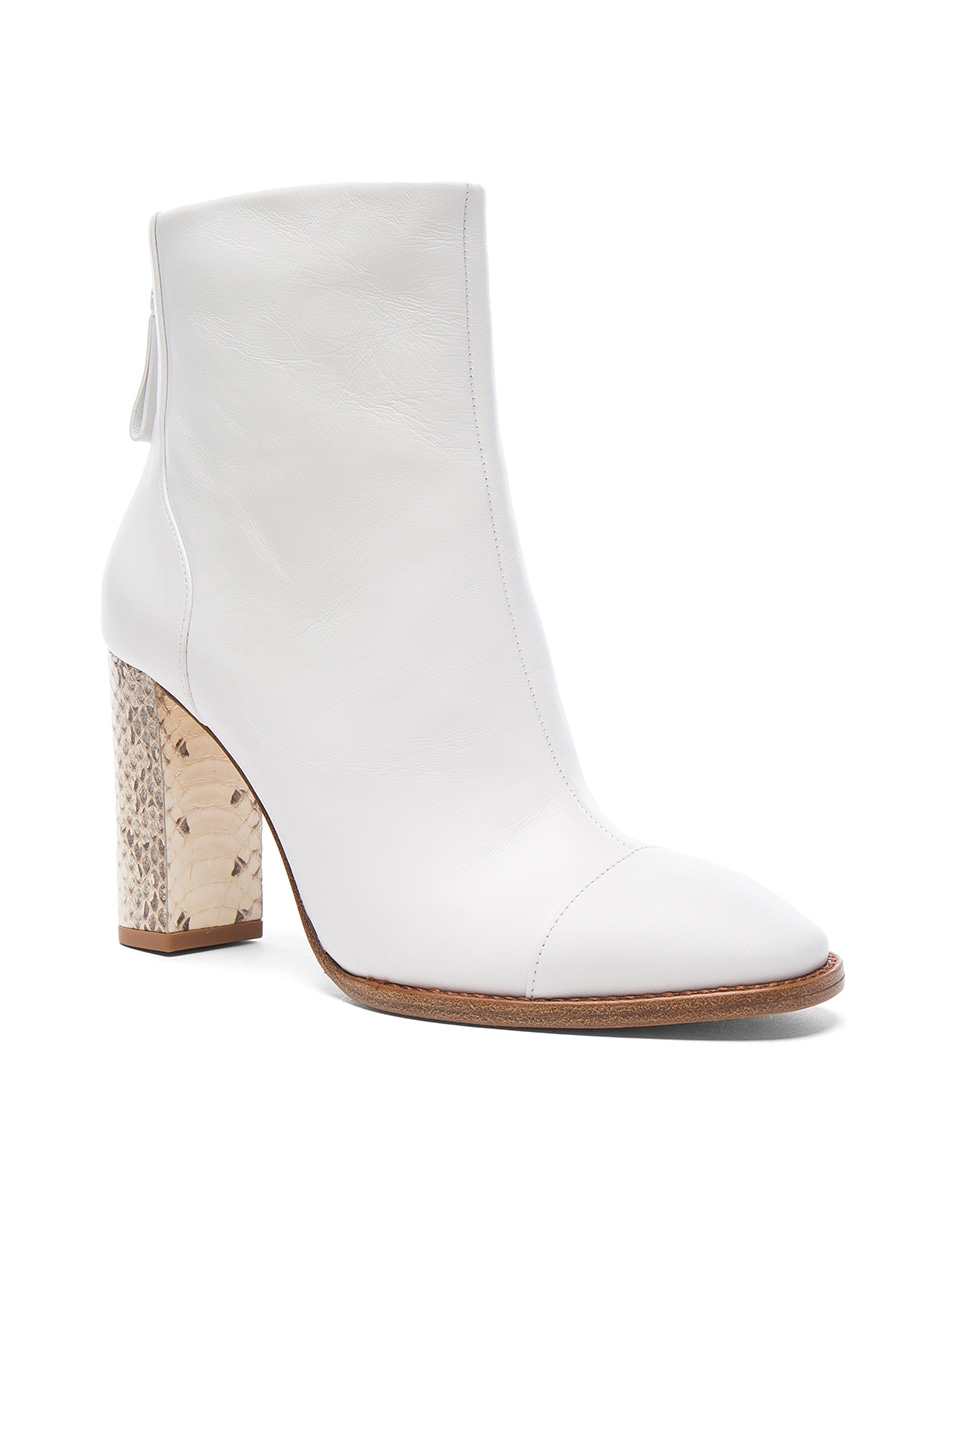 Image 2 of Alexandre Birman Leather Bibiana Watersnake Booties in White & Natural